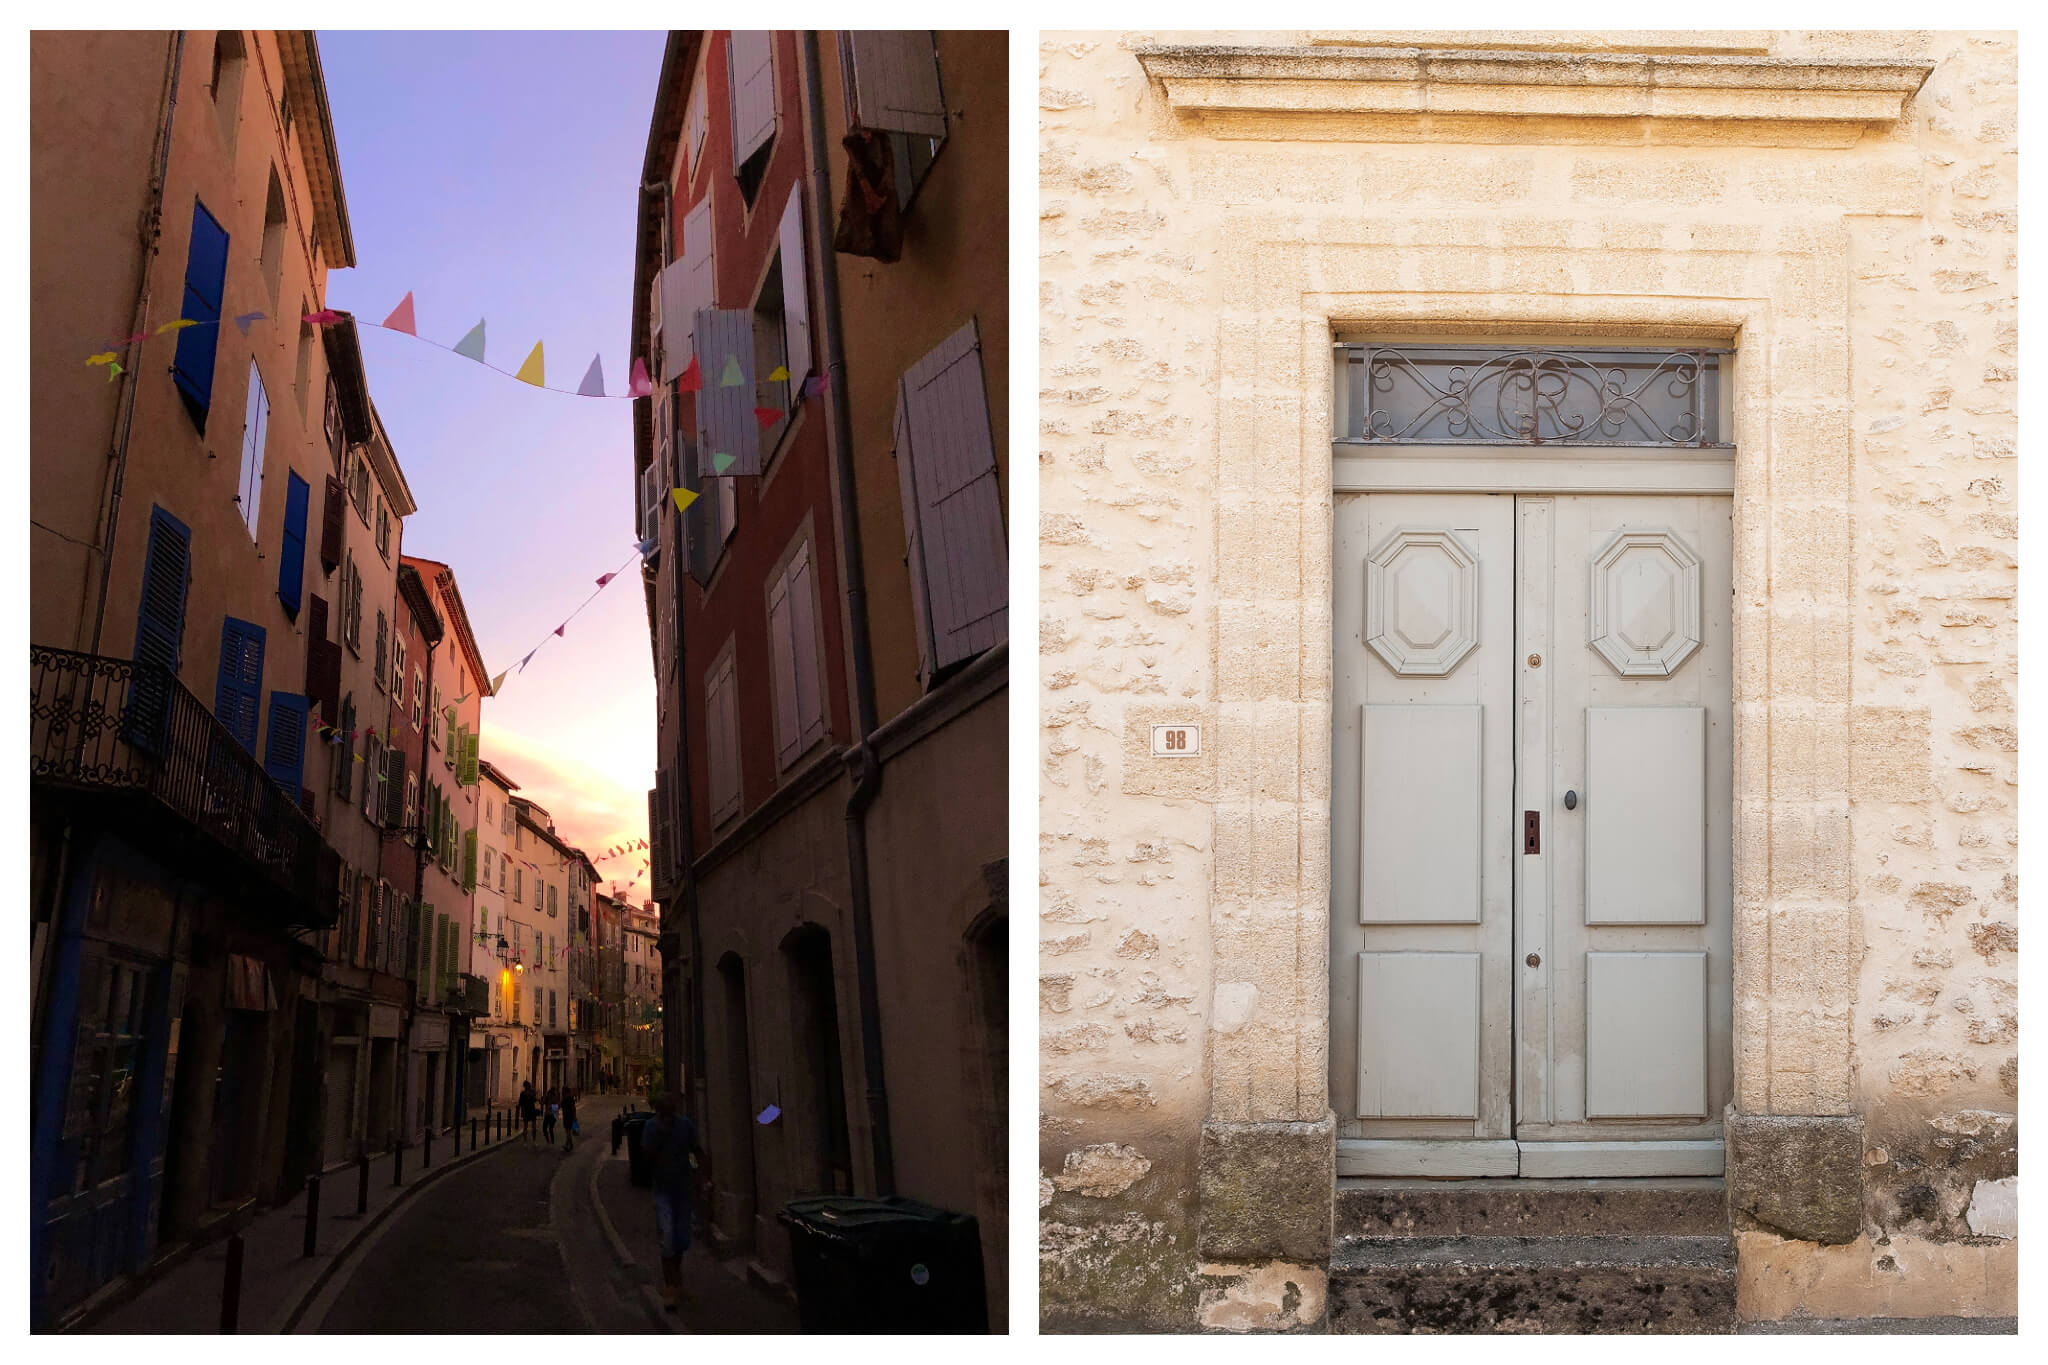 Left: a Provence street at sunset. Right: the front door of a house in Provence.